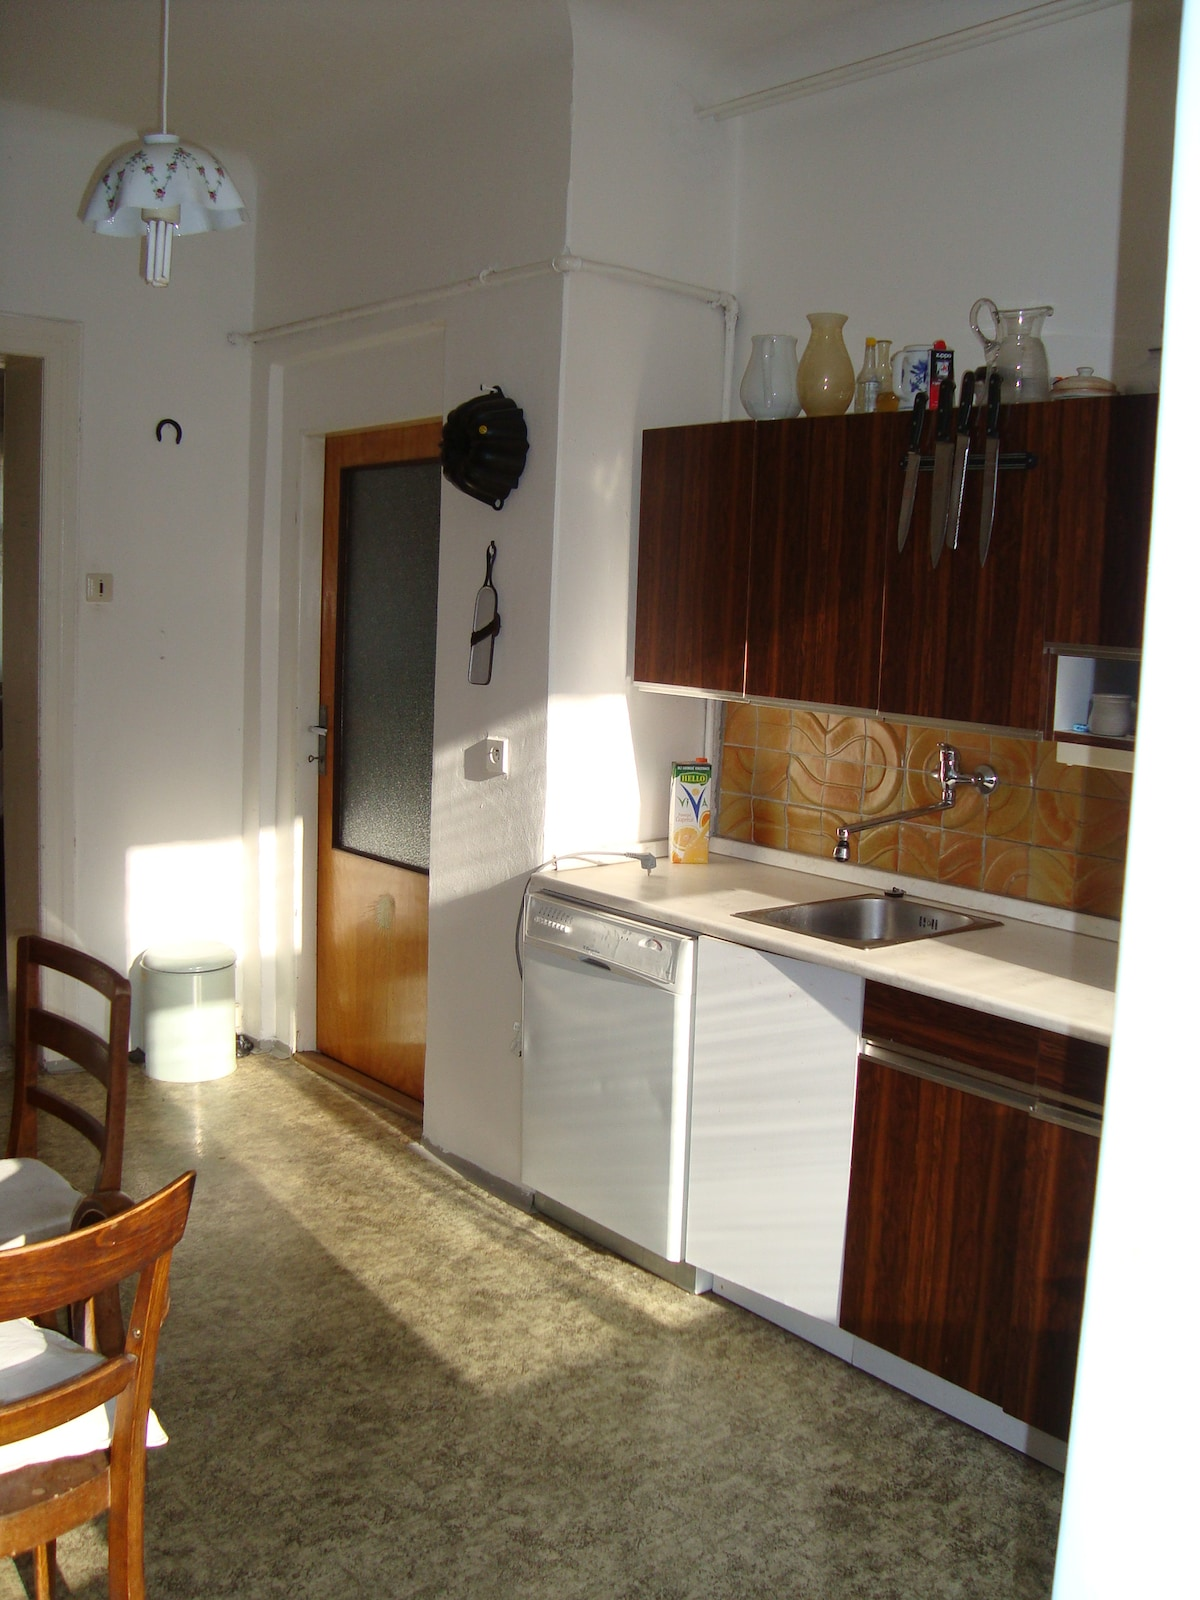 The flat has a large kitchen.